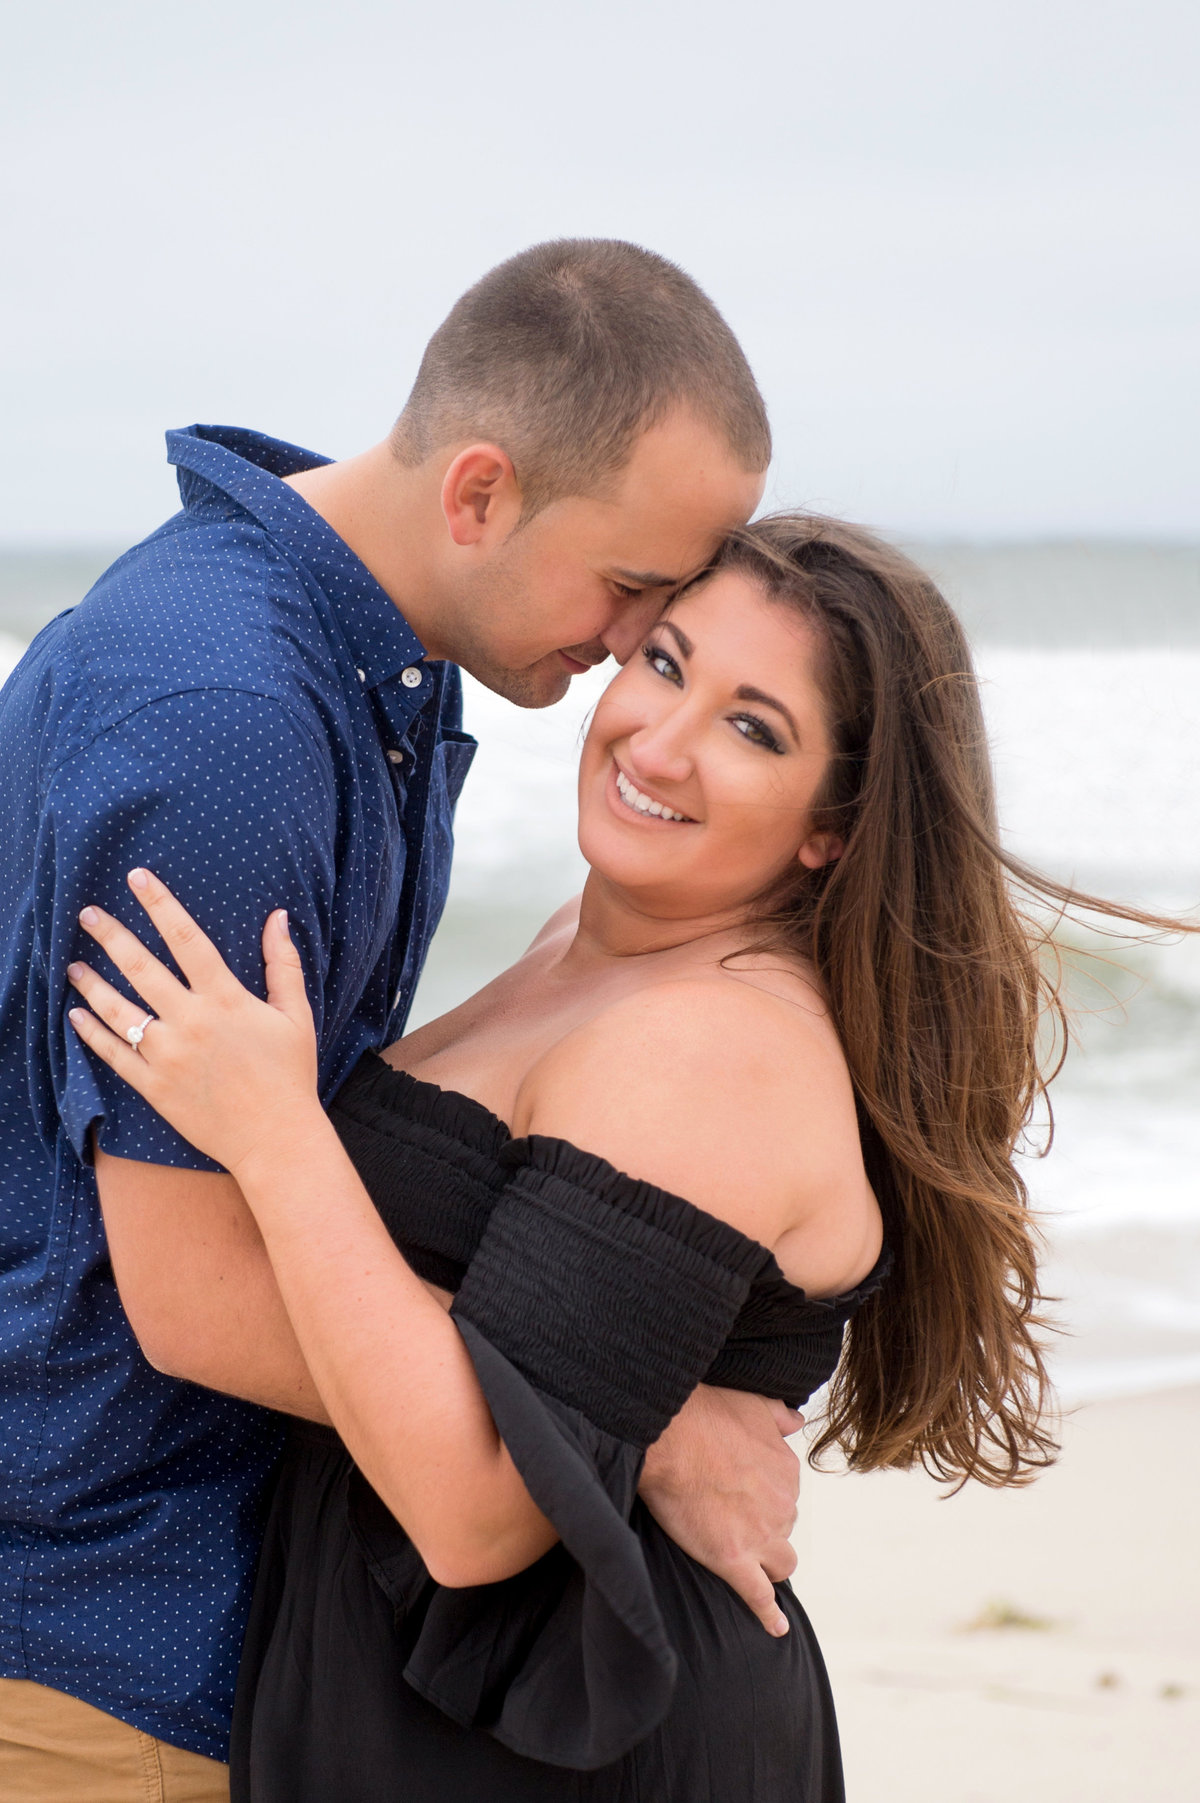 lavallette-beach-surprise-proposal-imagery-by-marianne-52